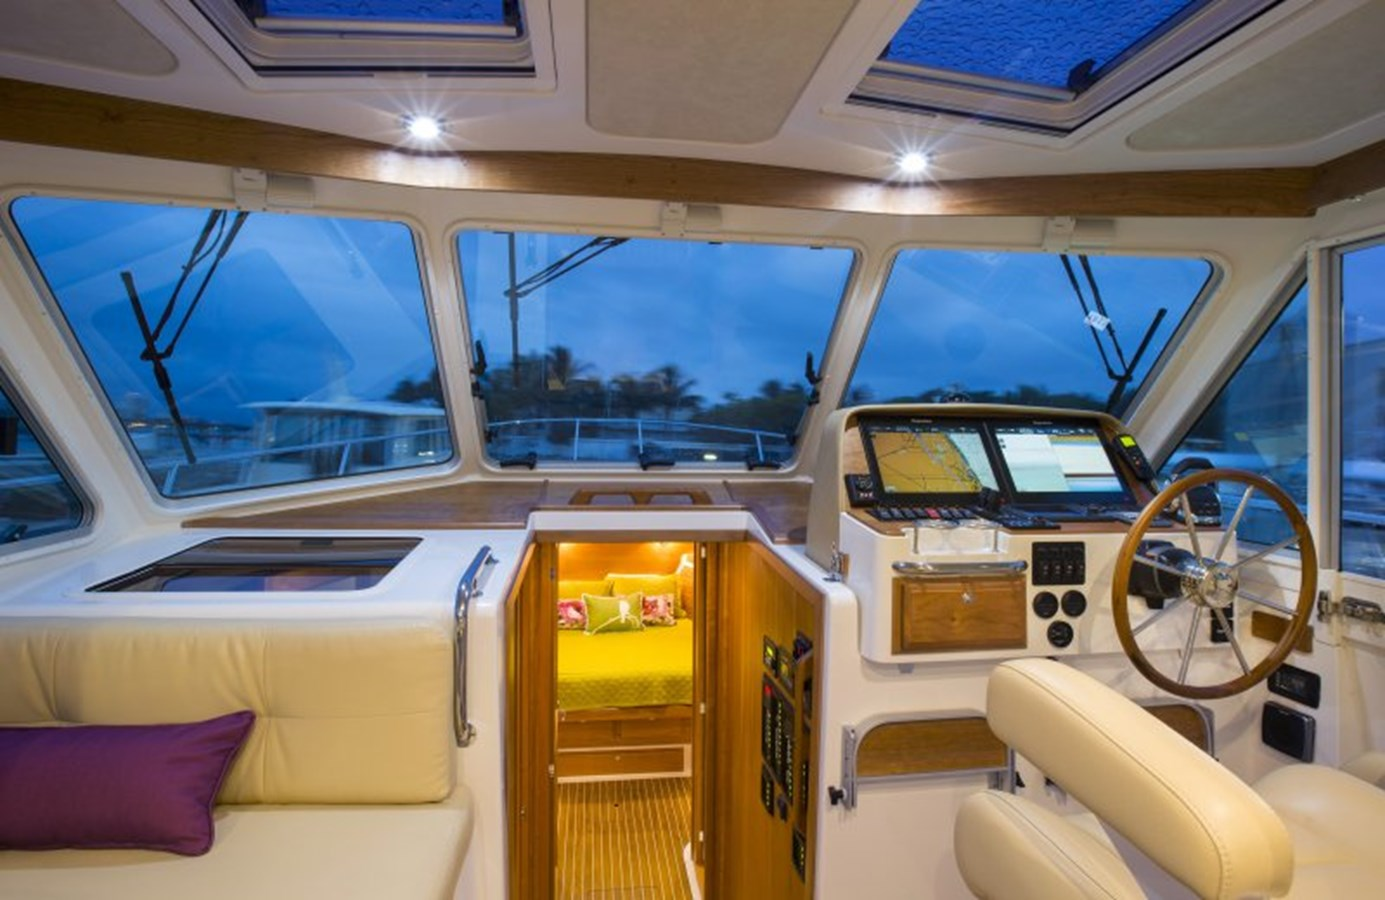 bc41 helm - 41 BACK COVE For Sale